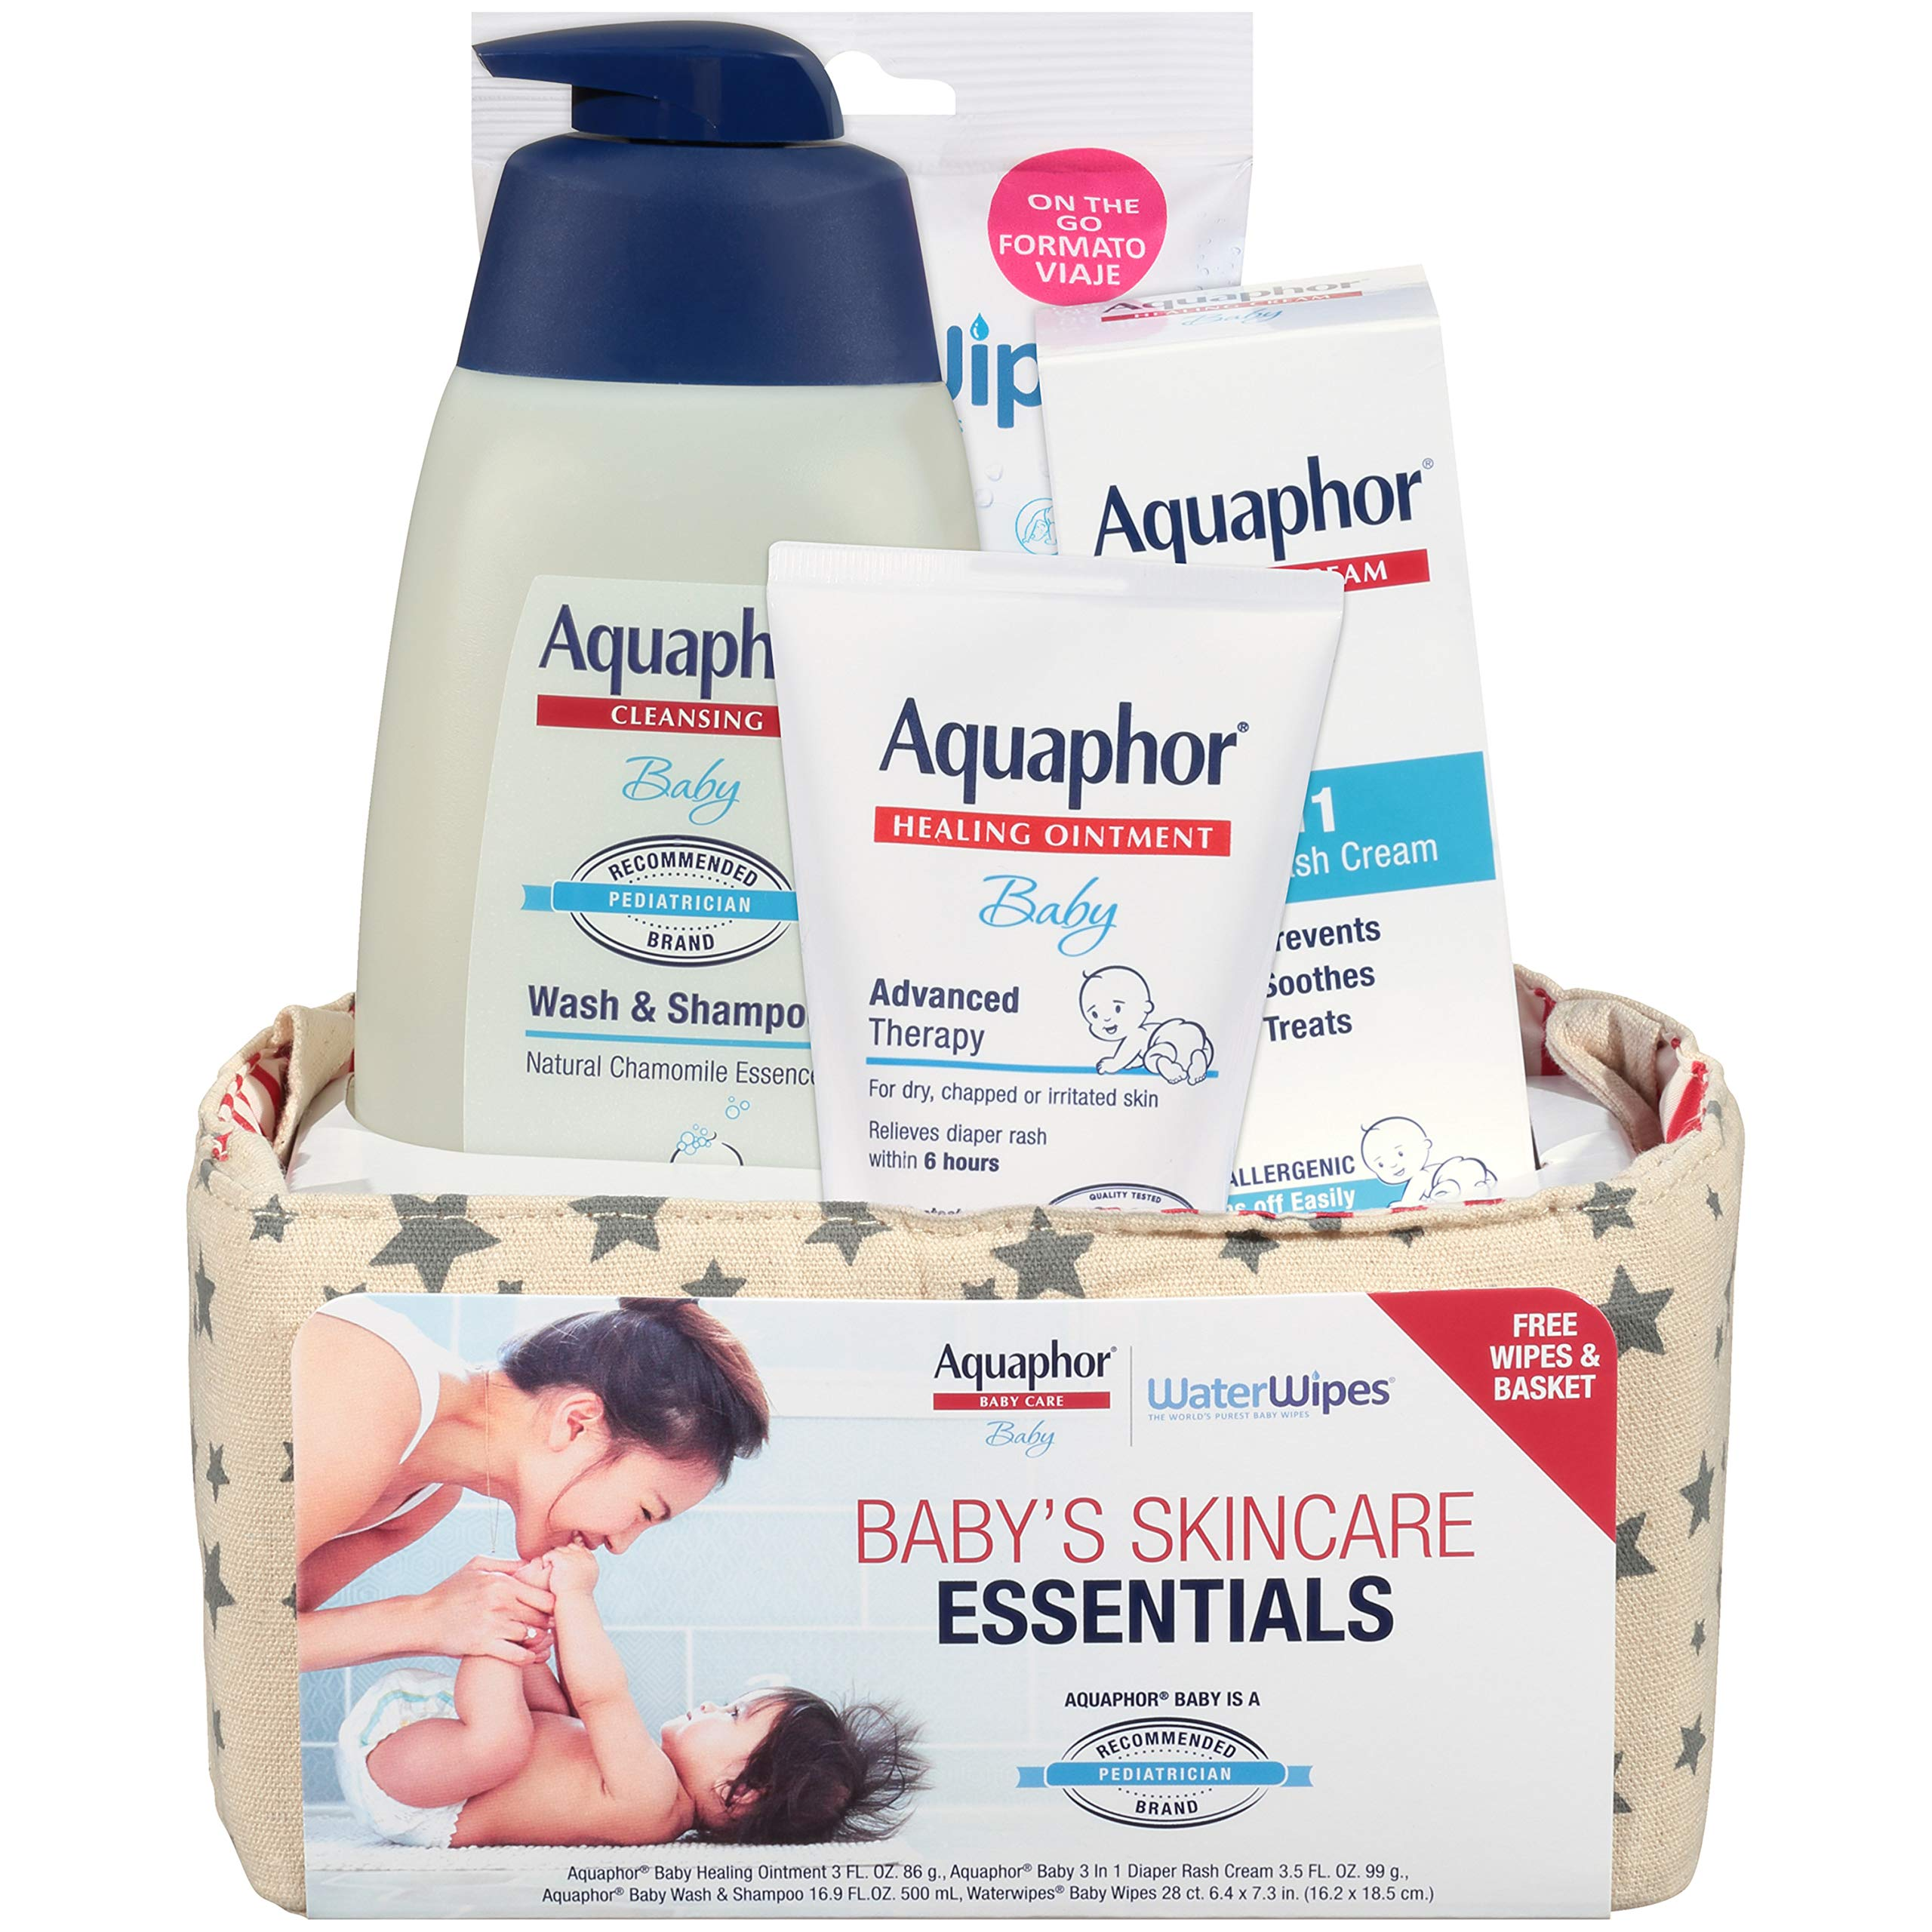 Aquaphor Baby Welcome Baby Gift Set Free Waterwipes And Bag Included Healing Ointment Wash And Shampoo 3 In 1 Diaper Rash Cream